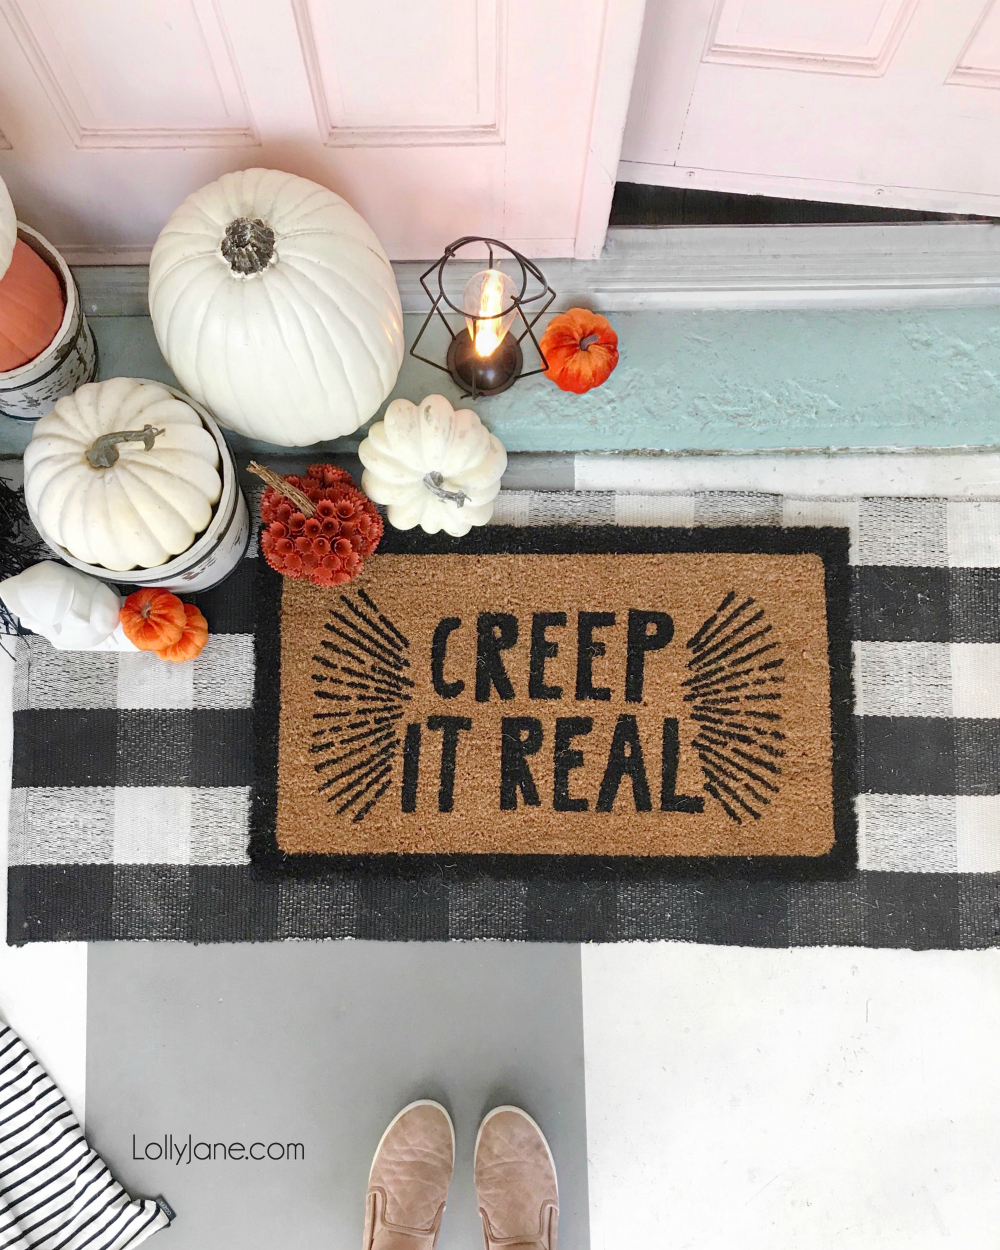 """CREEP IT REAL!"" Best Halloween doormat ever! Pair with a pile of fake pumpkins + lantern to bring Halloween to life on your front porch. After all, it's the first space to welcome guests!"